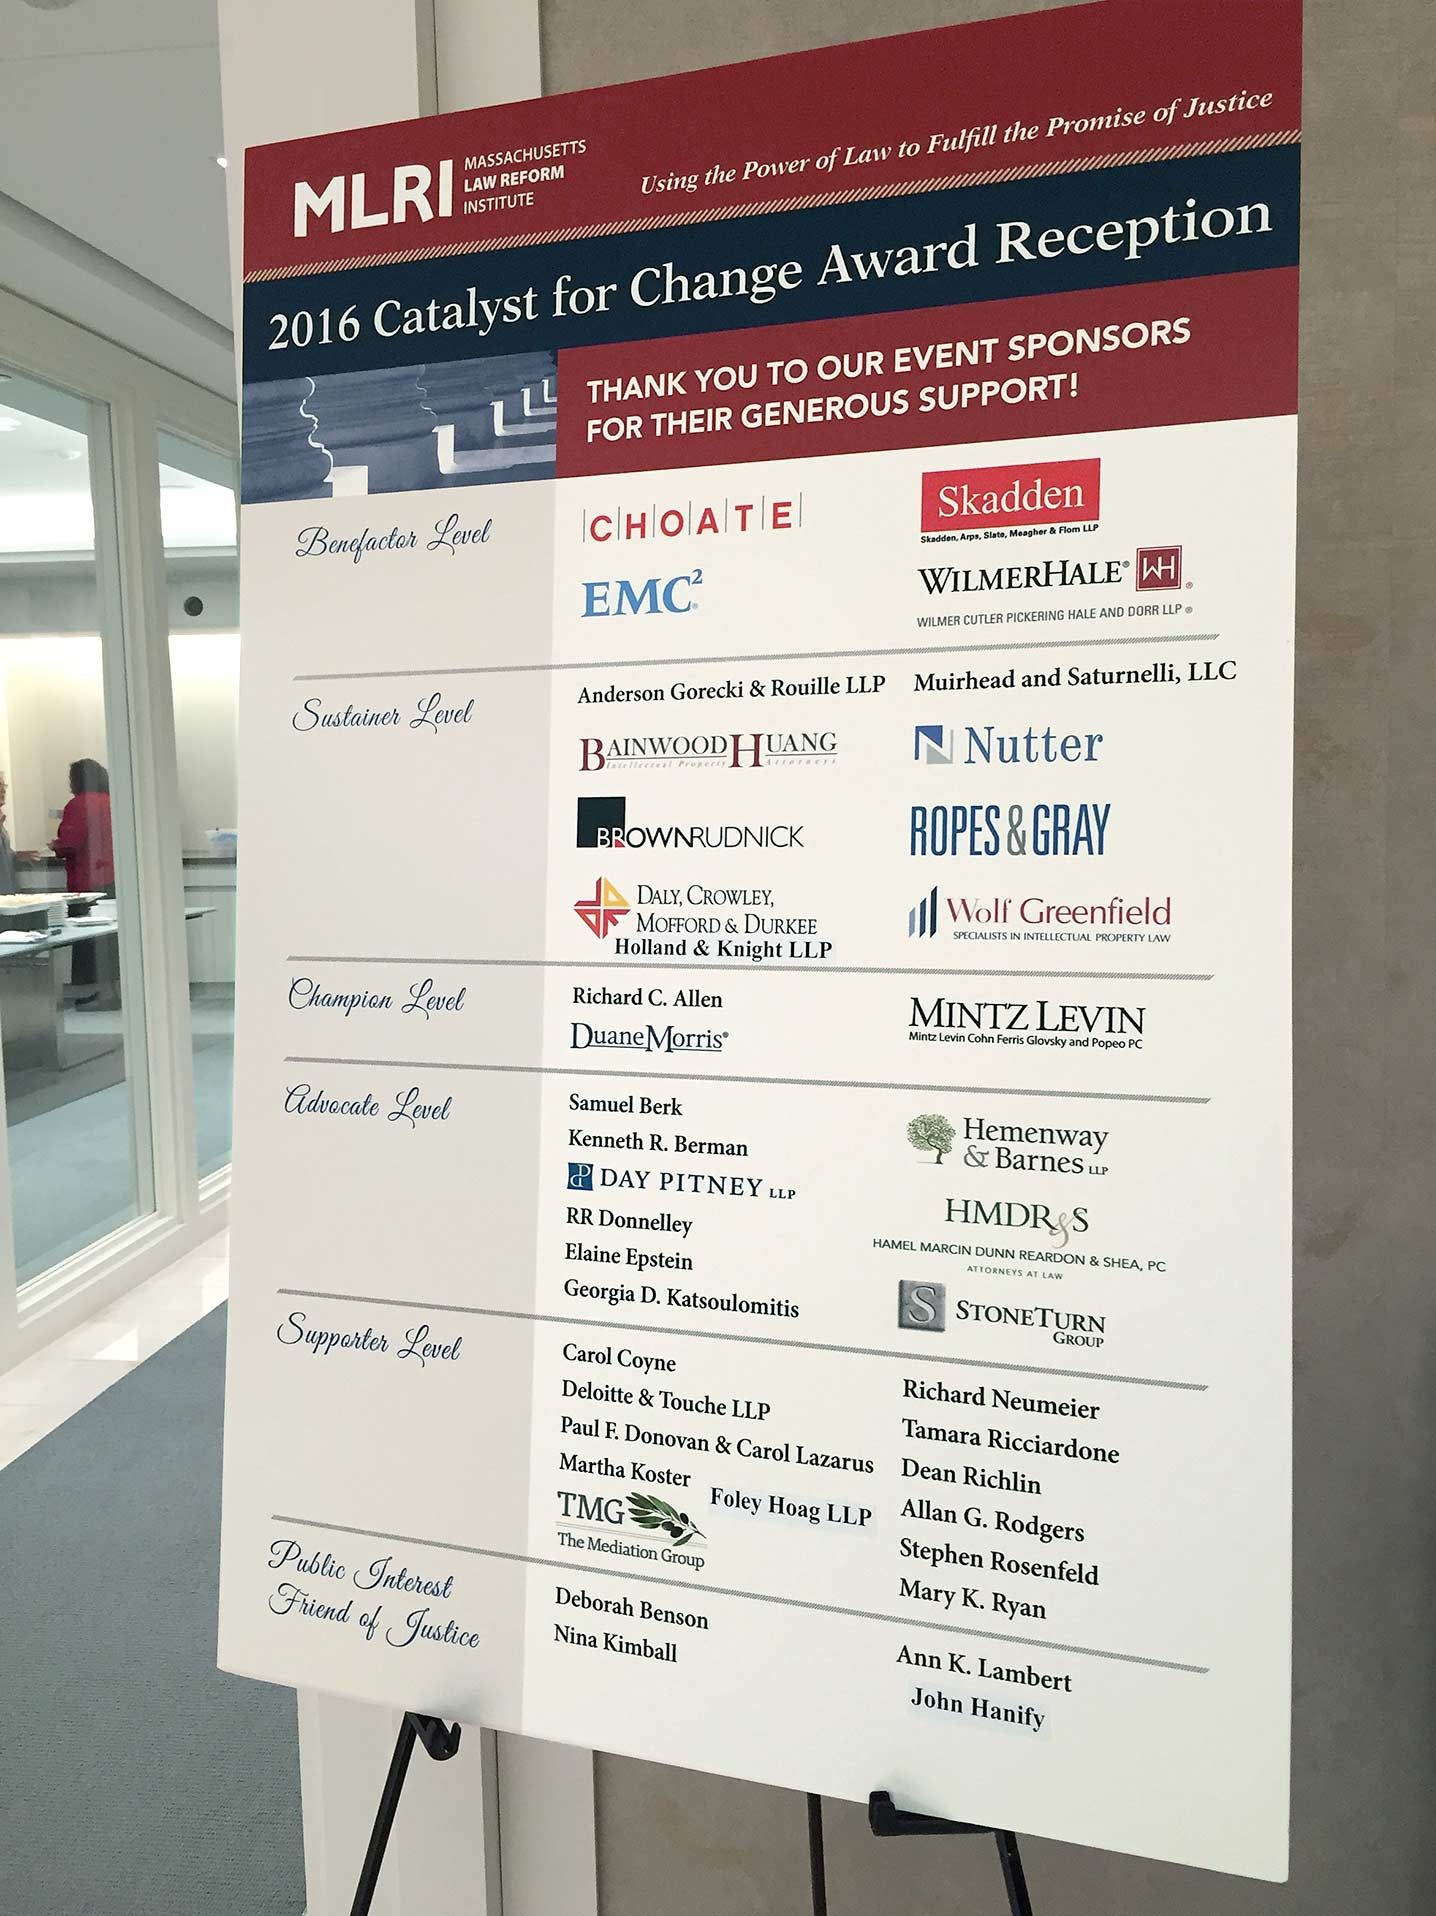 Bonnie Katz Design, Mass Law Reform Institute Catalyst for Change sign